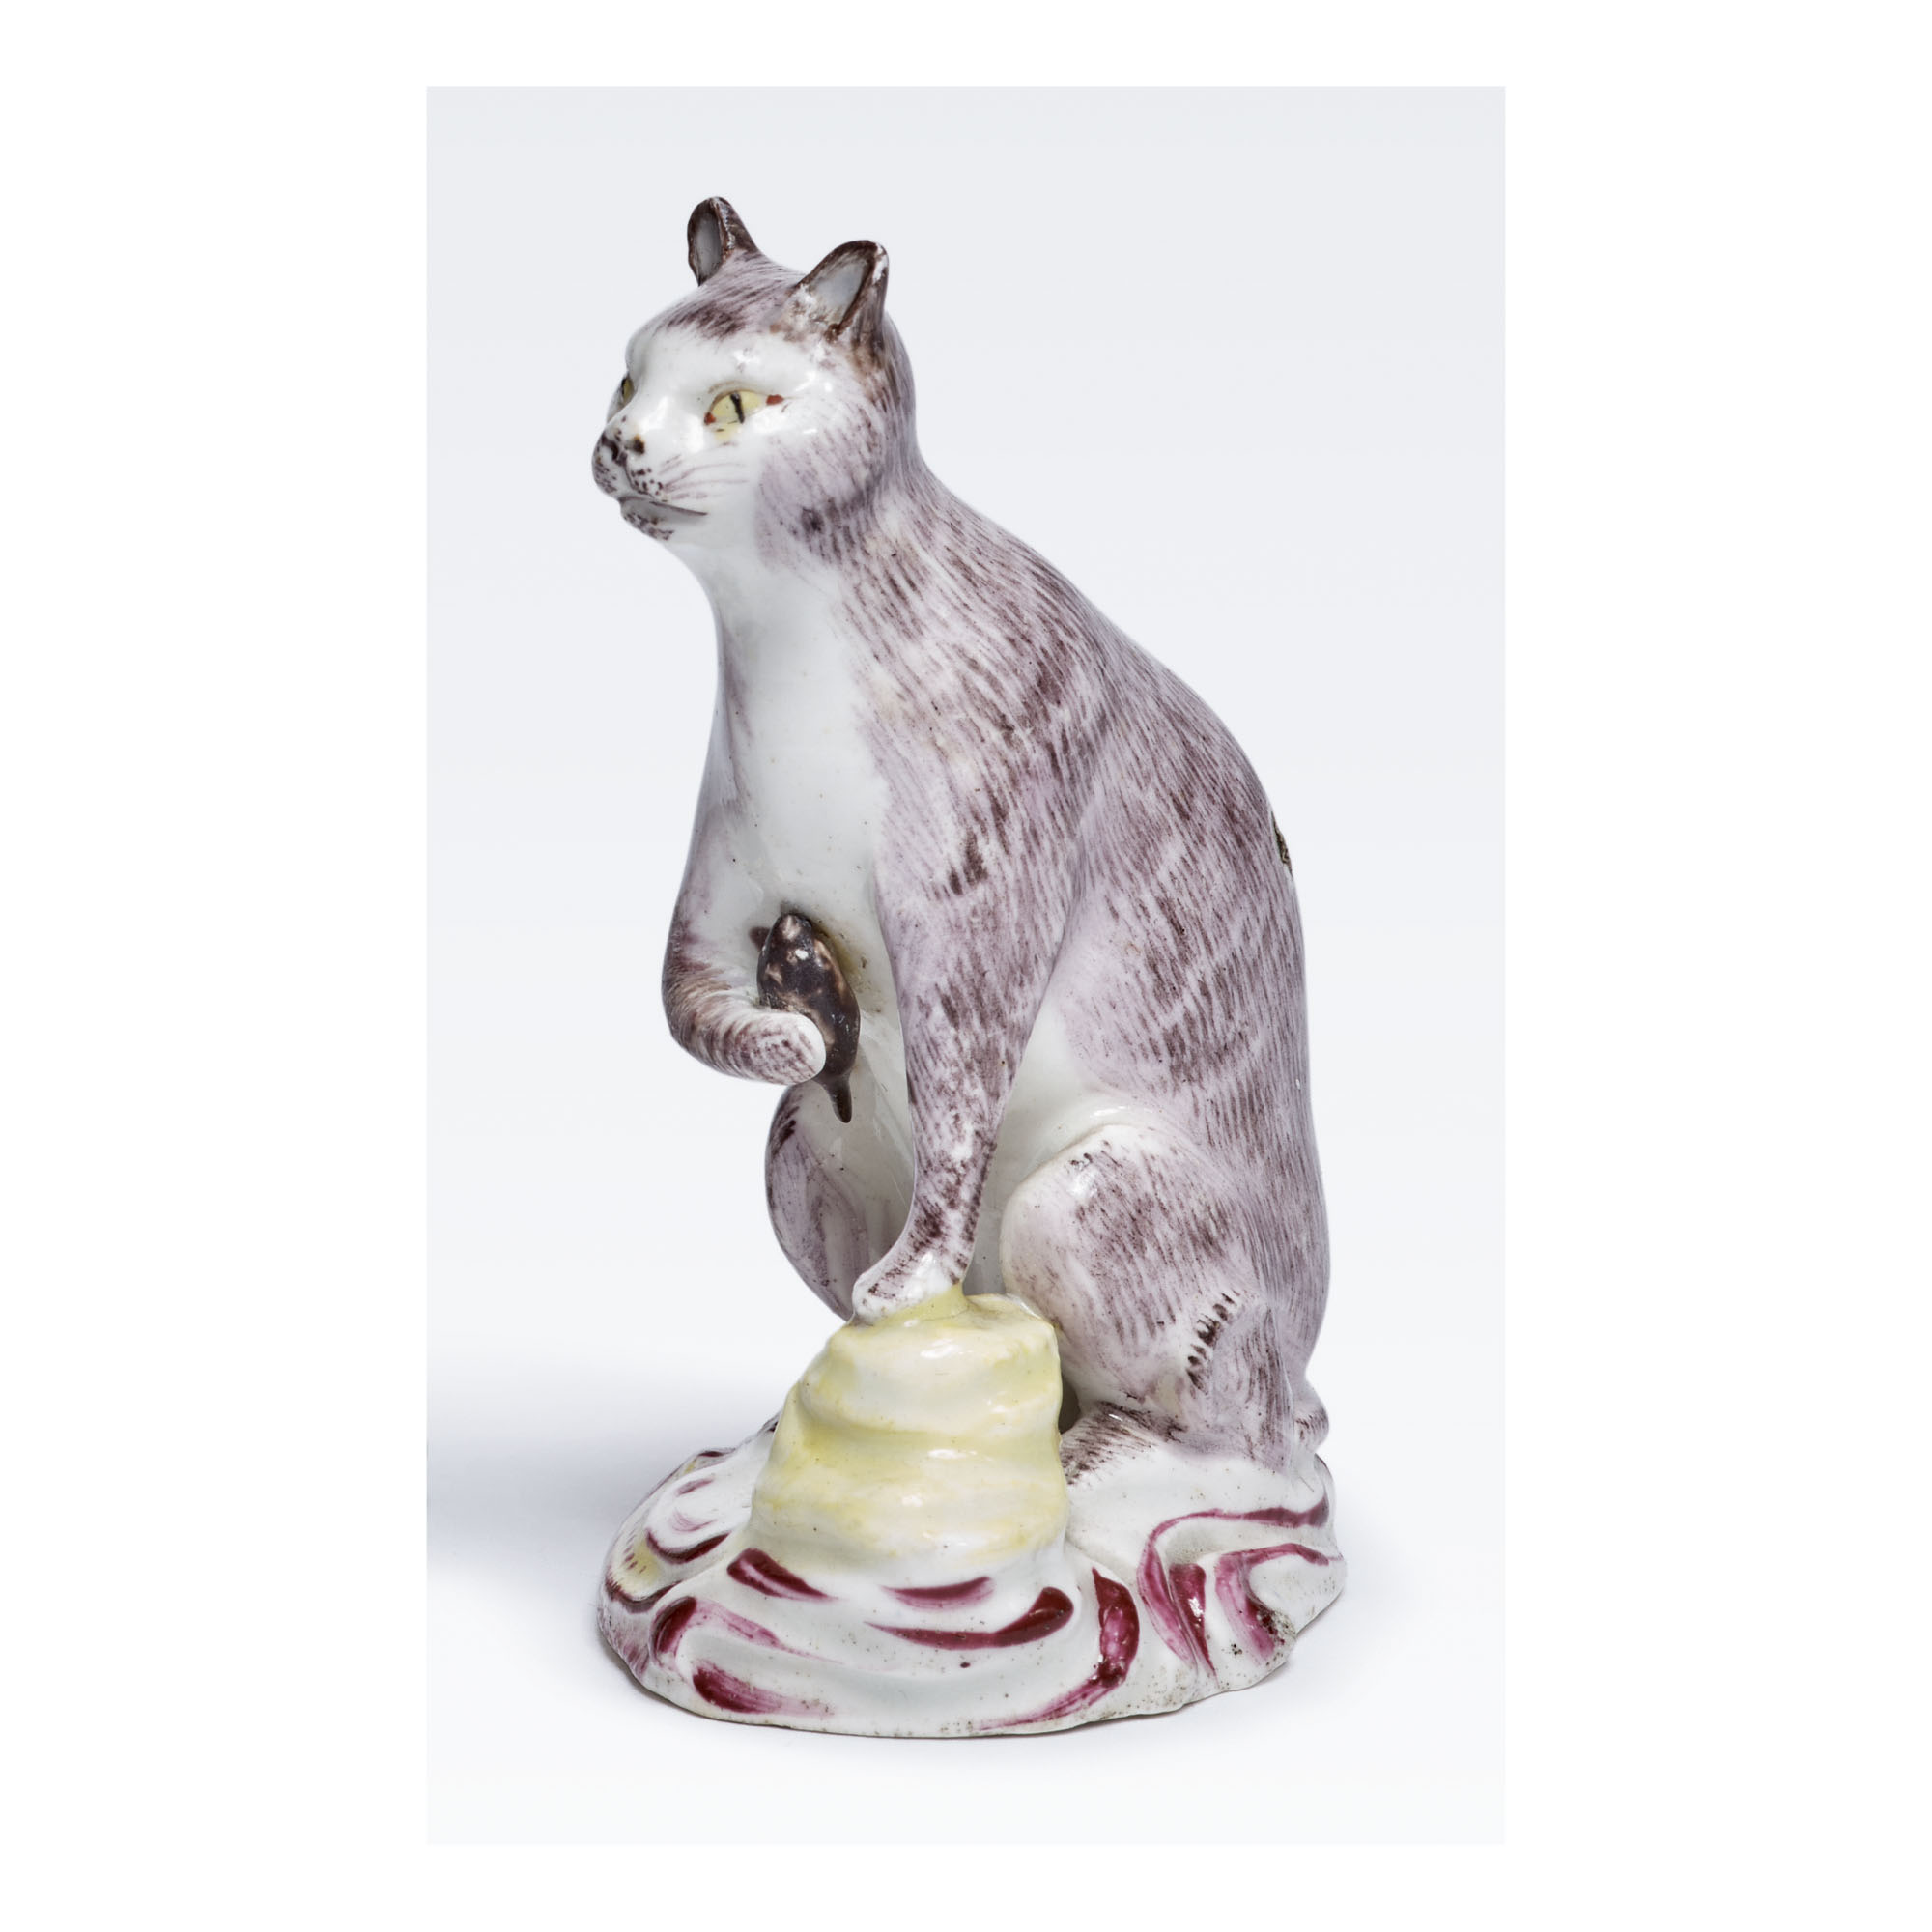 A BOW PORCELAIN FIGURE OF A SEATED CAT CIRCA 1758-60